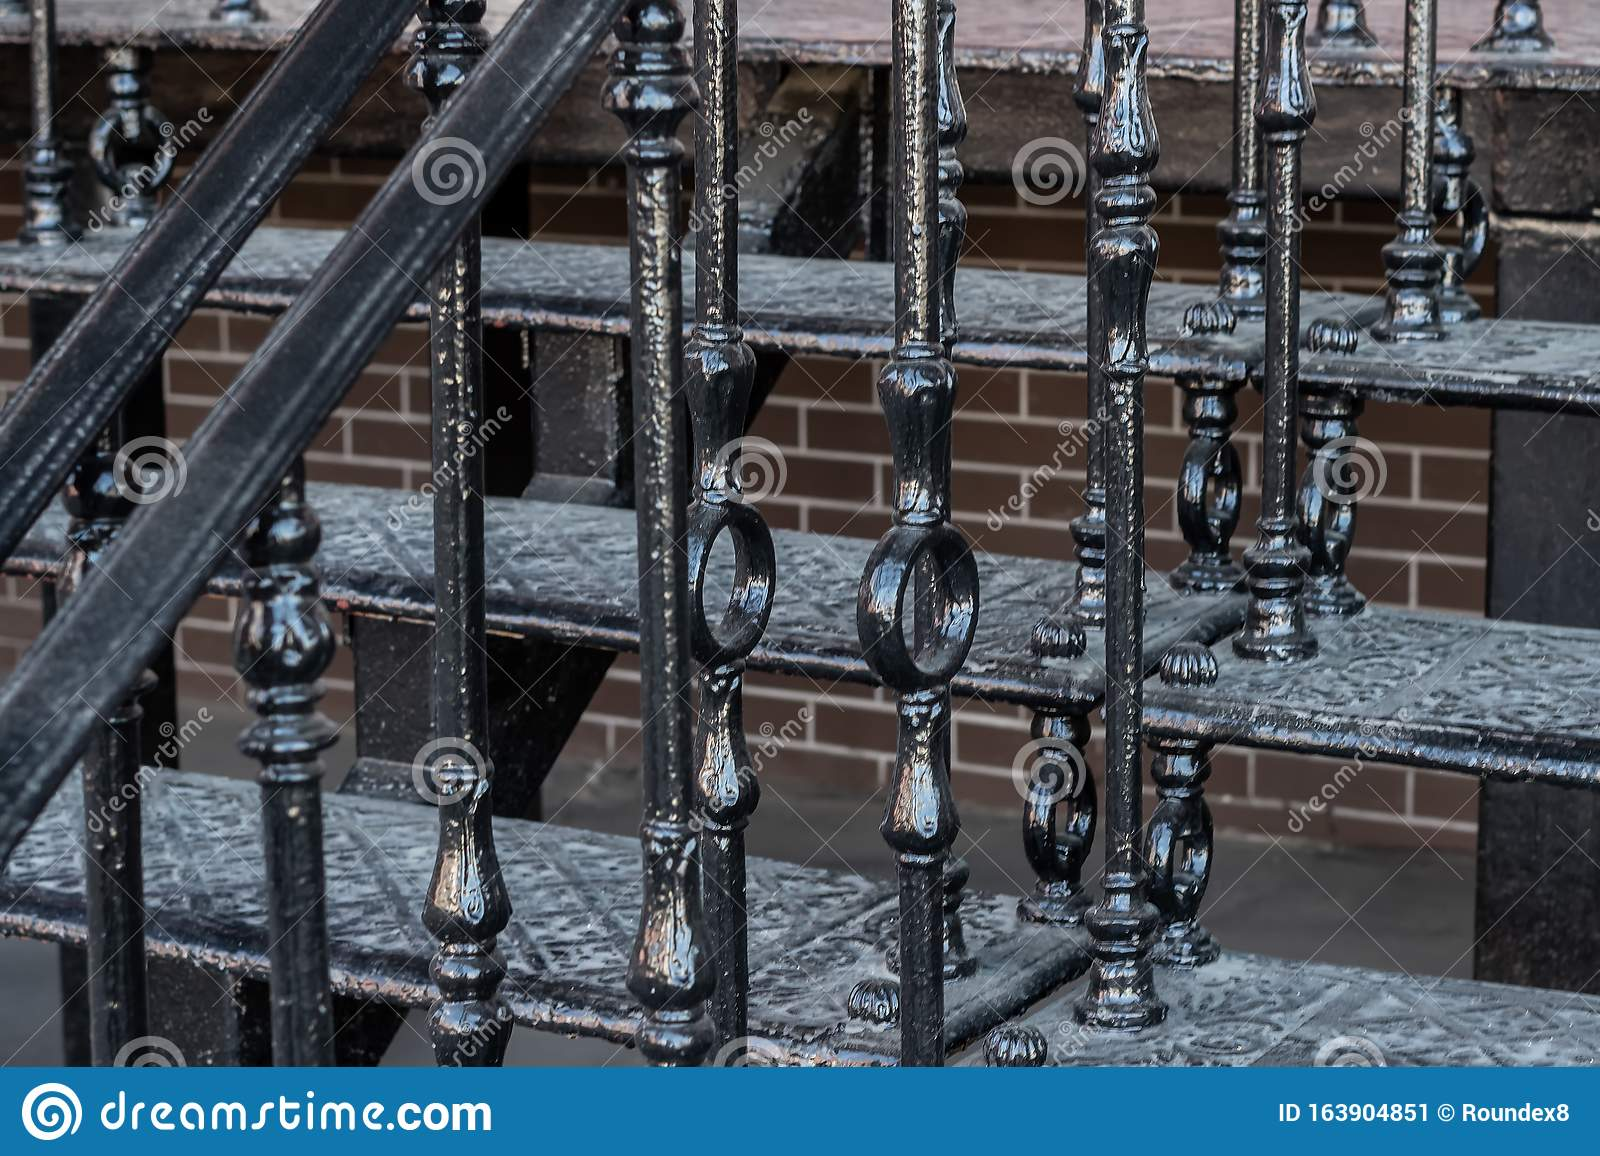 Metal Staircase And Wrought Iron Railing Stock Image Image Of Fence Background 163904851